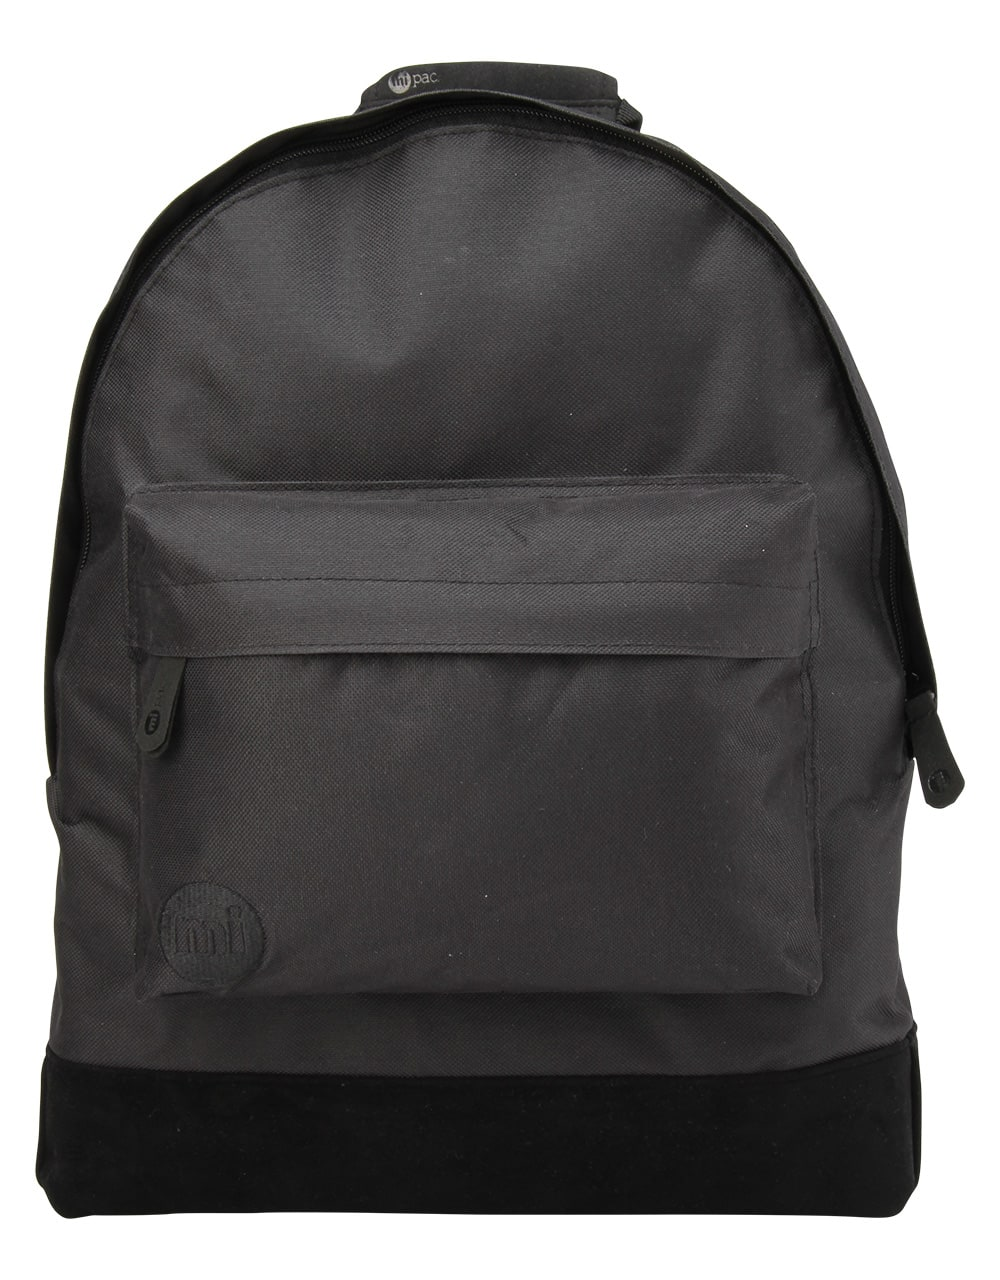 MiPac Topstars Backpack  Black